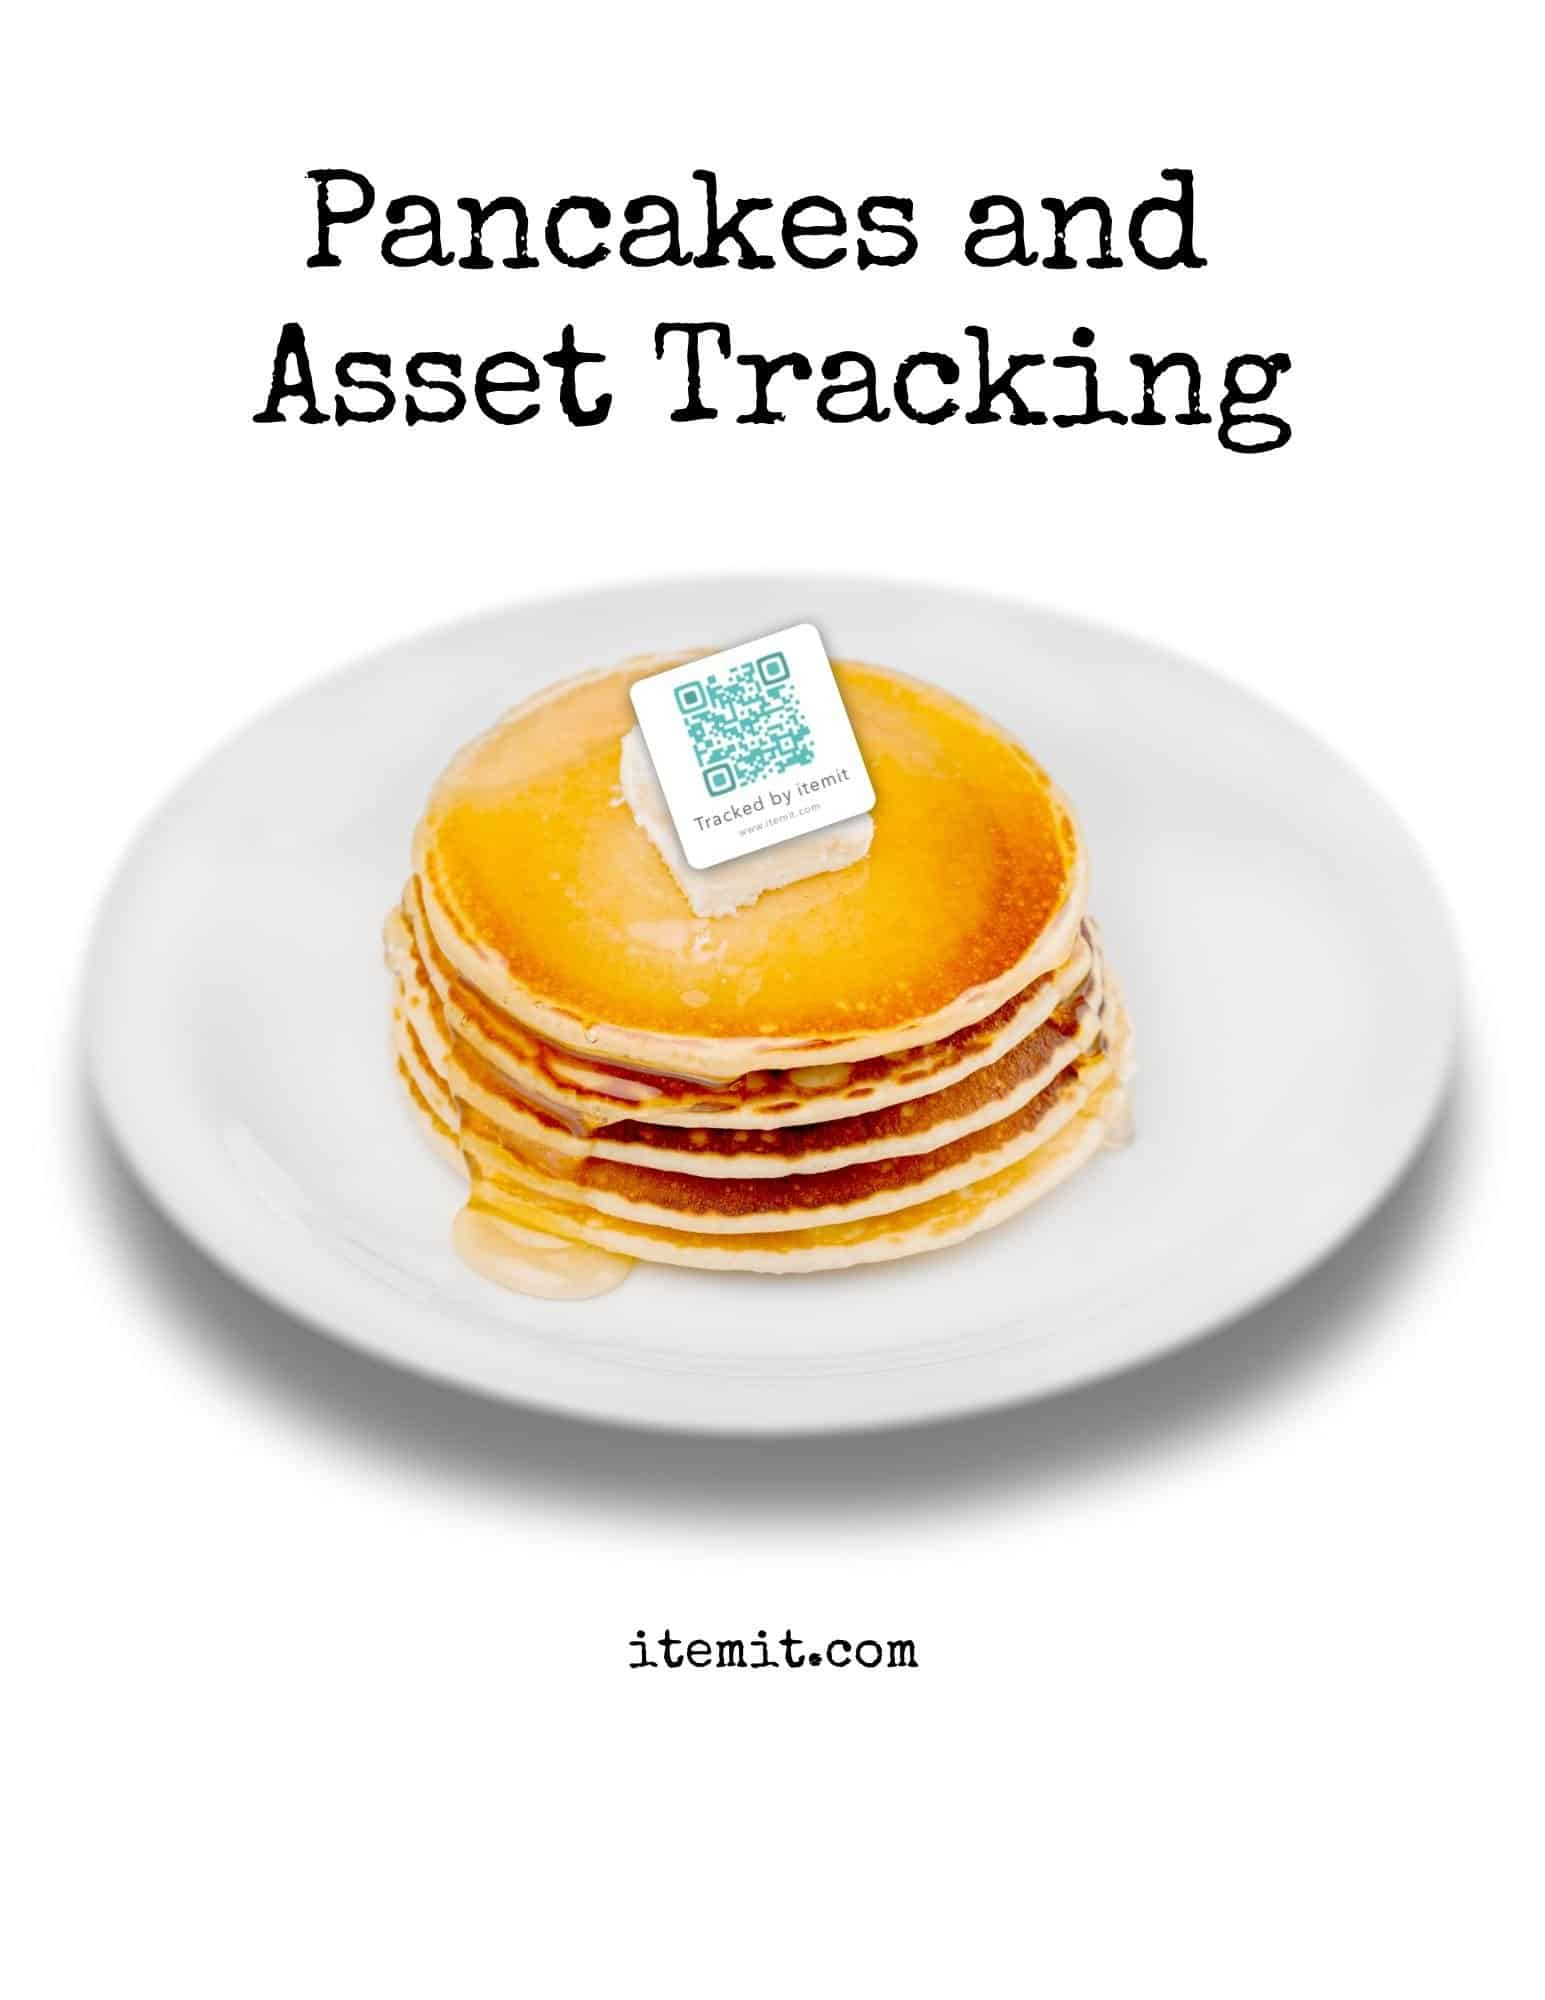 Asset Tracking, your Office Assets, and Pancake Day